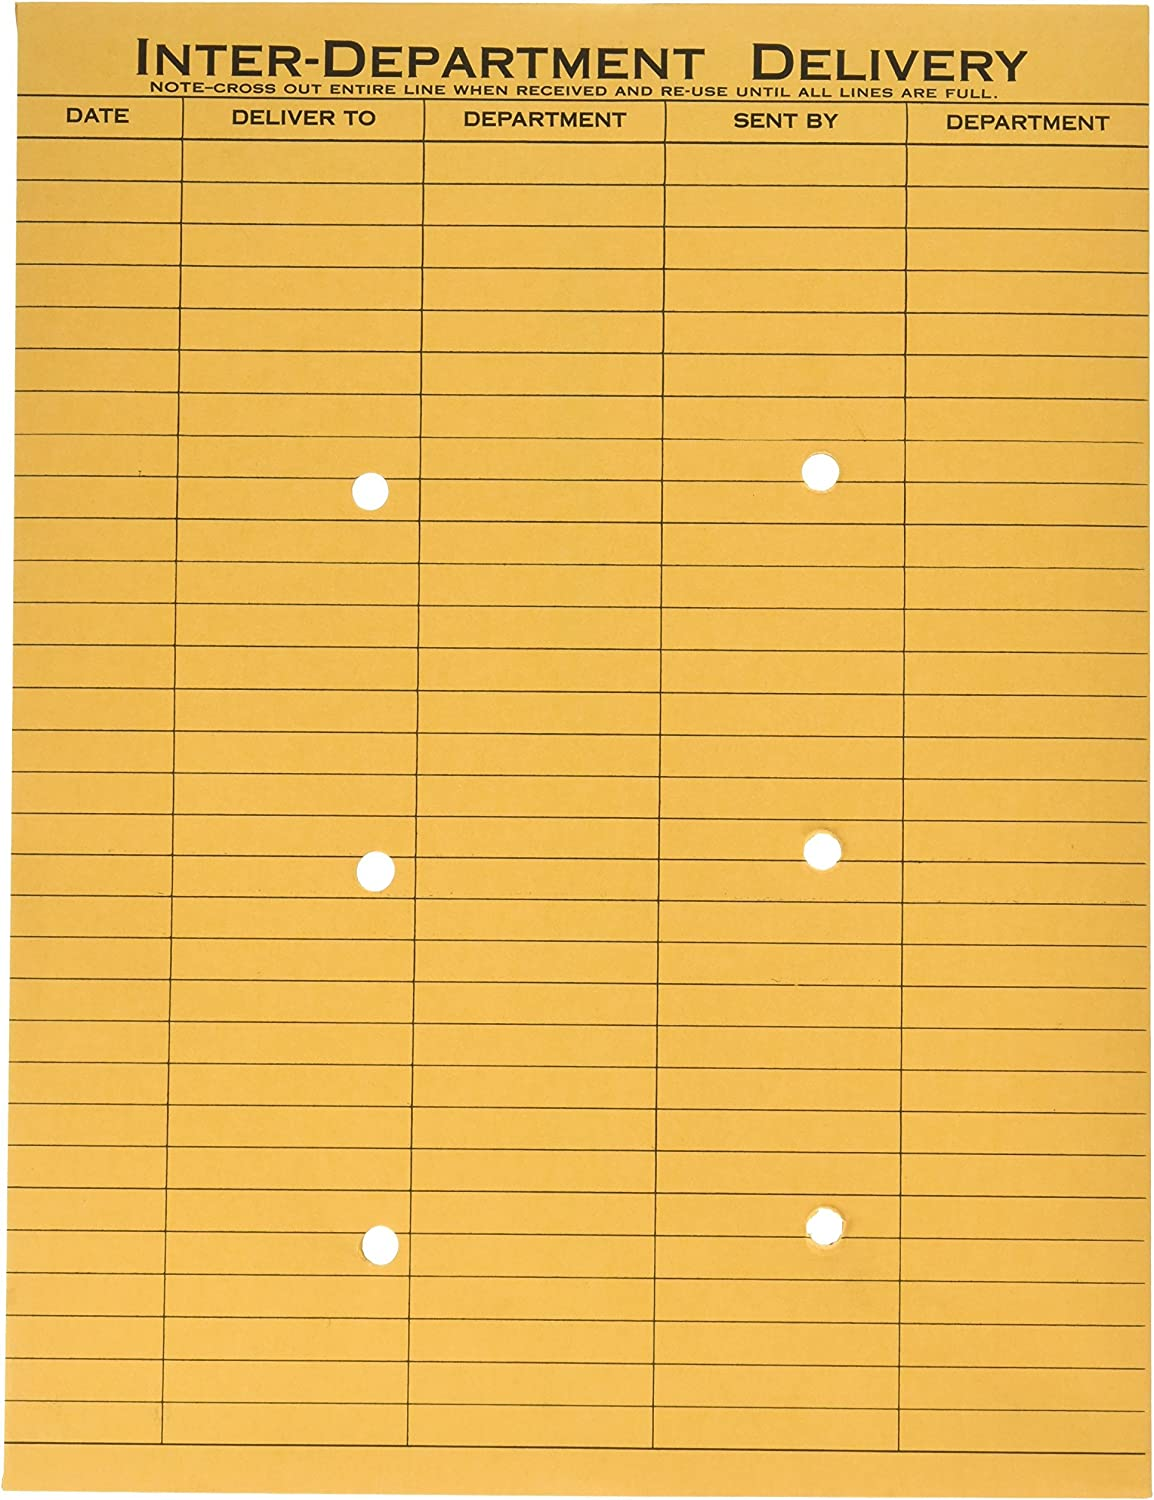 Quality Park 10 x 13 Interoffice Envelopes, with Reusable Redi-Tac Self Seal Closure, for Interoffice Mail, Heavyweight 32 lb Brown Kraft, 100 per Box